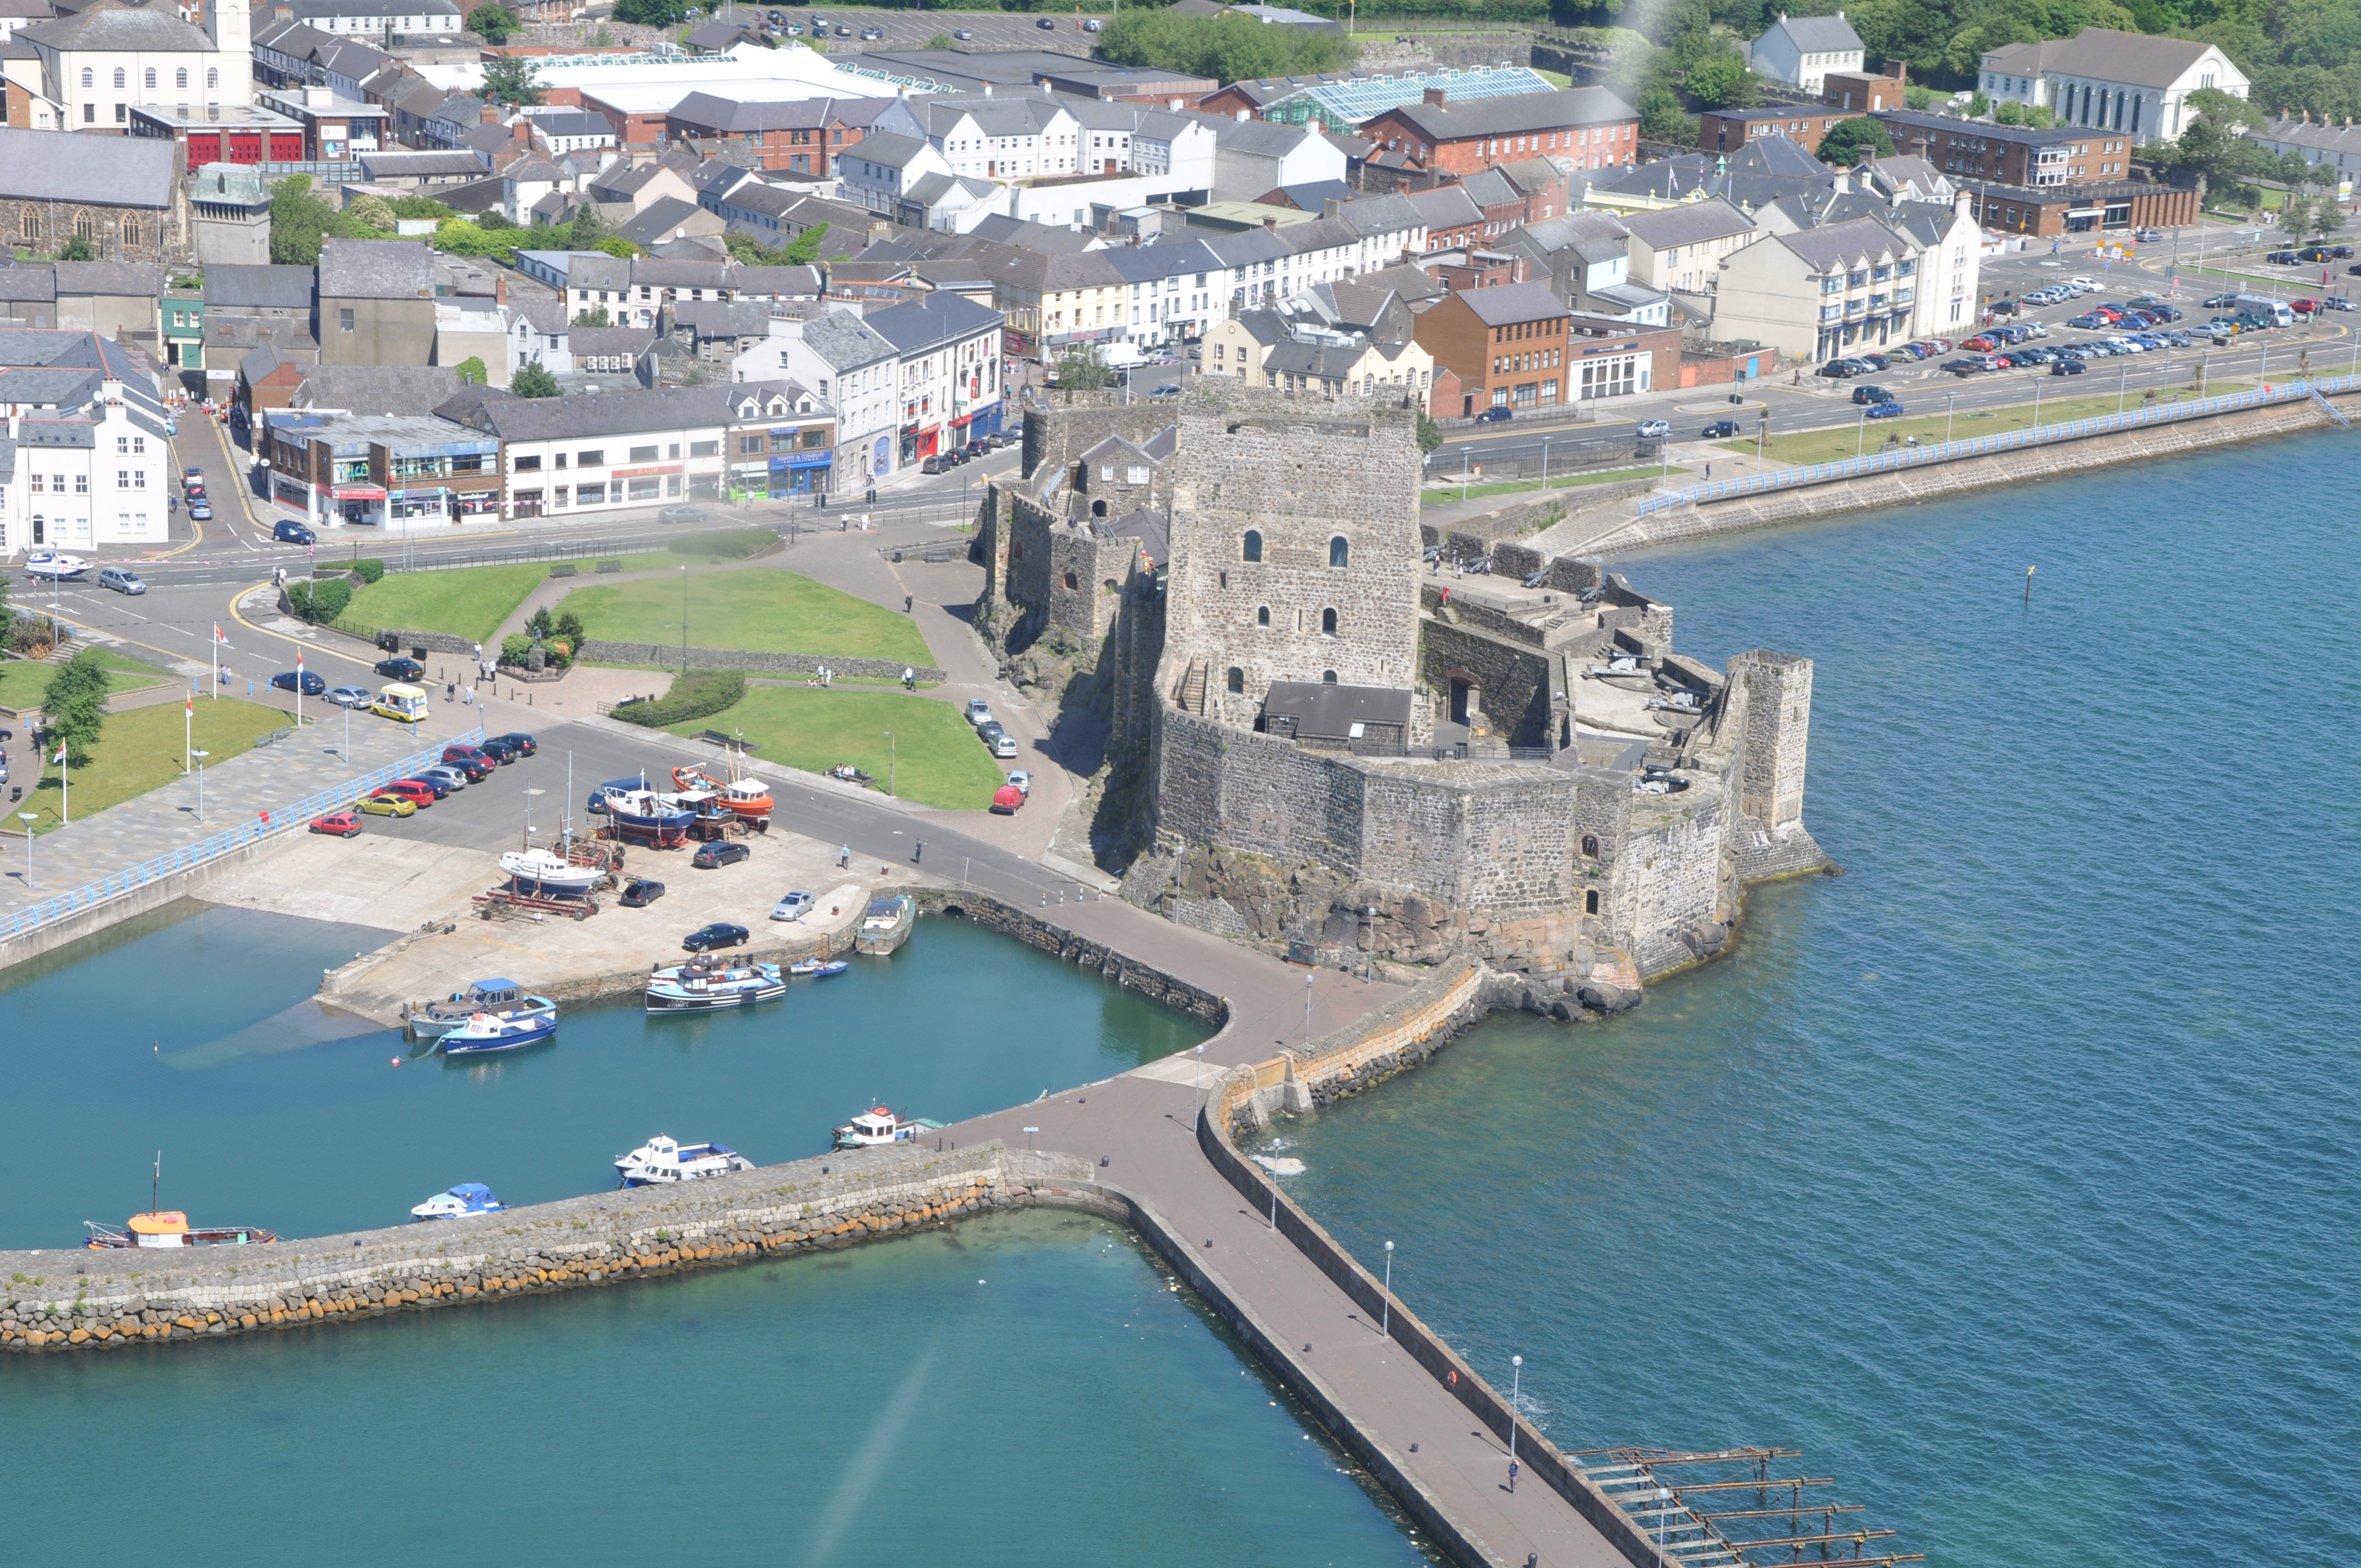 Aerial view of Carrickfergus Castle and town. Photo taken on June 23, 2009.